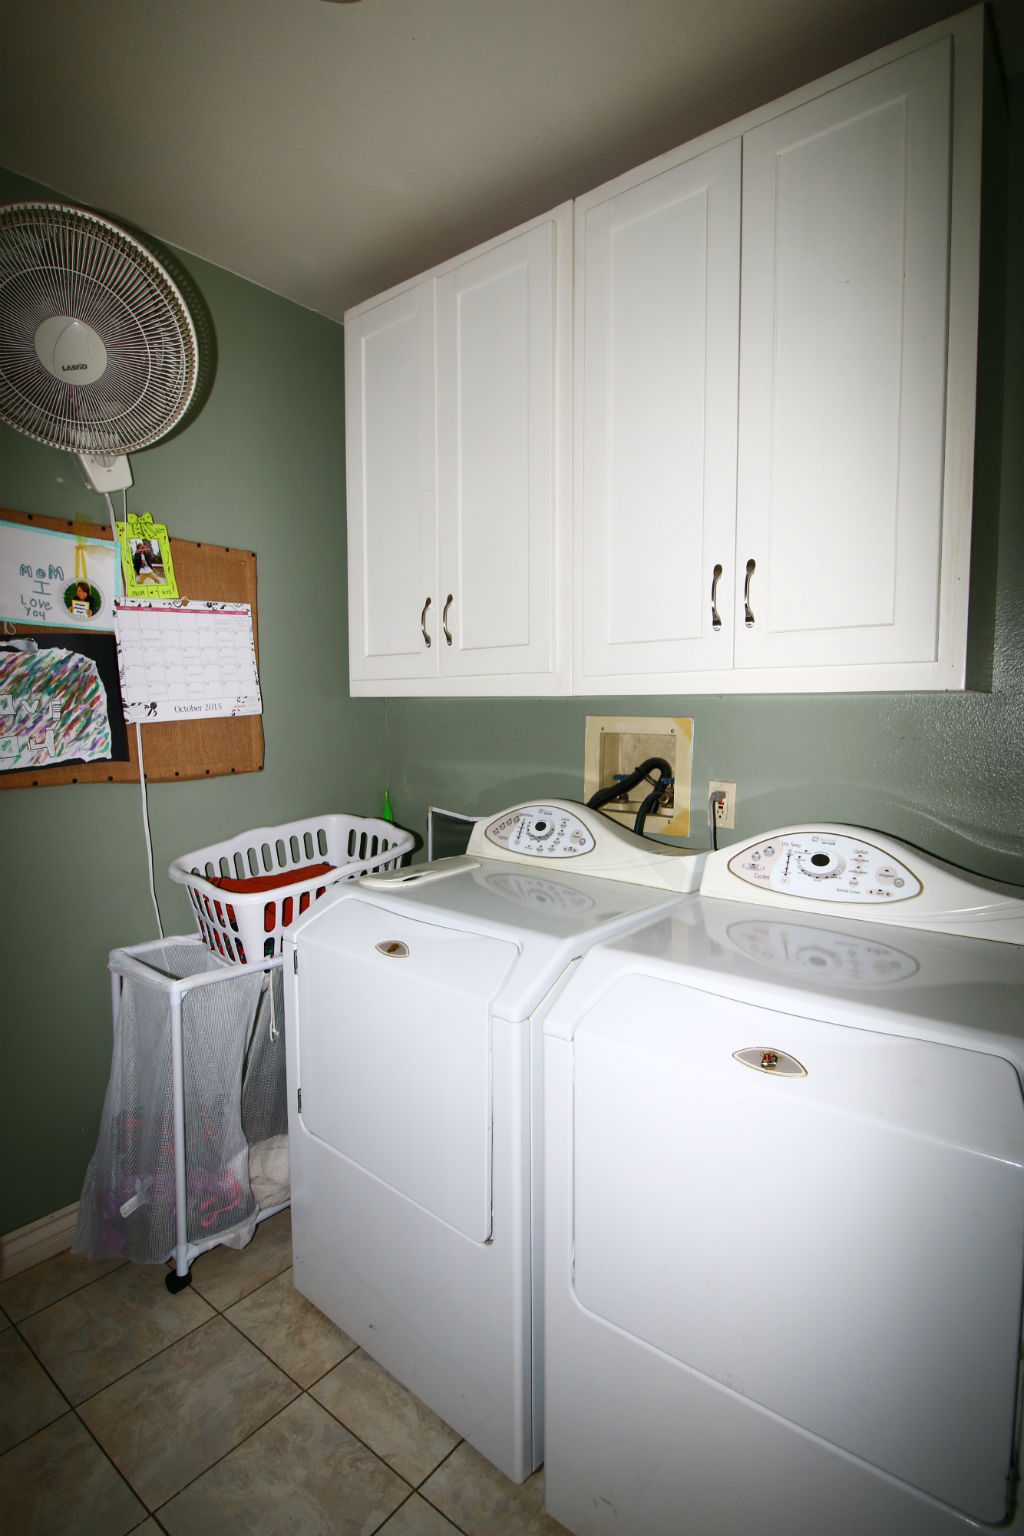 Separate laundry room with lots of cabinetry -- late model washer/dryer units are included.